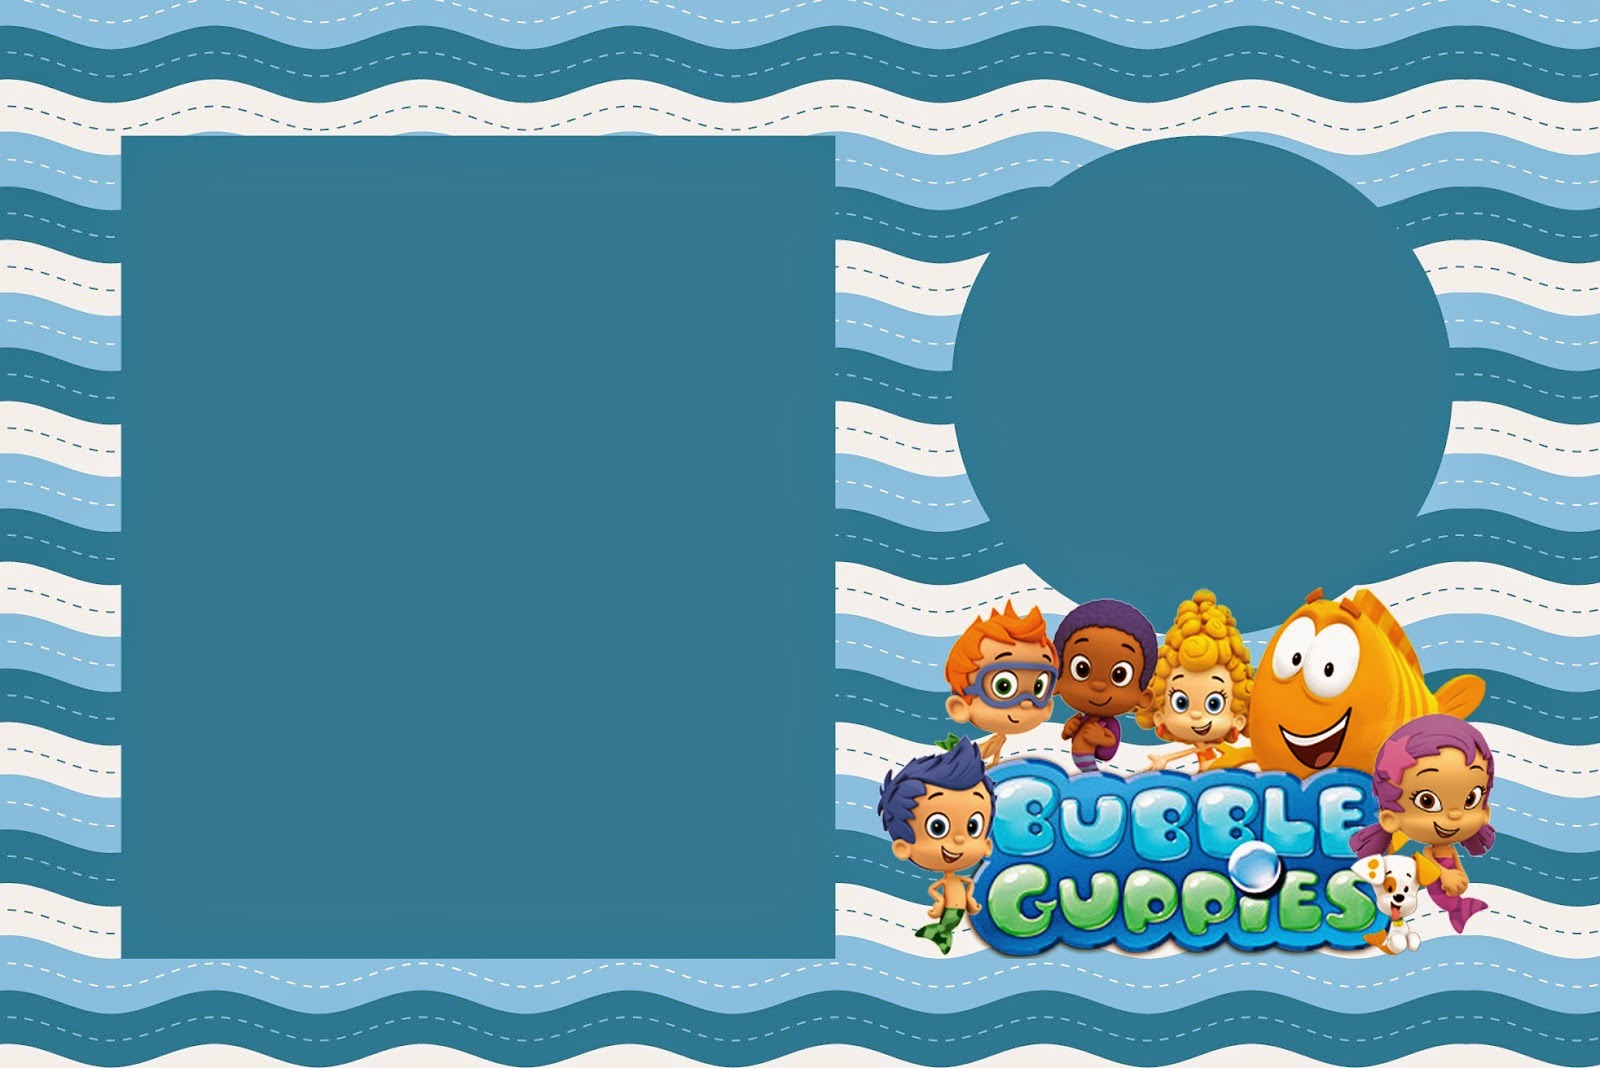 Bubble Guppies Free Printable Invitations Oh My Fiesta in english